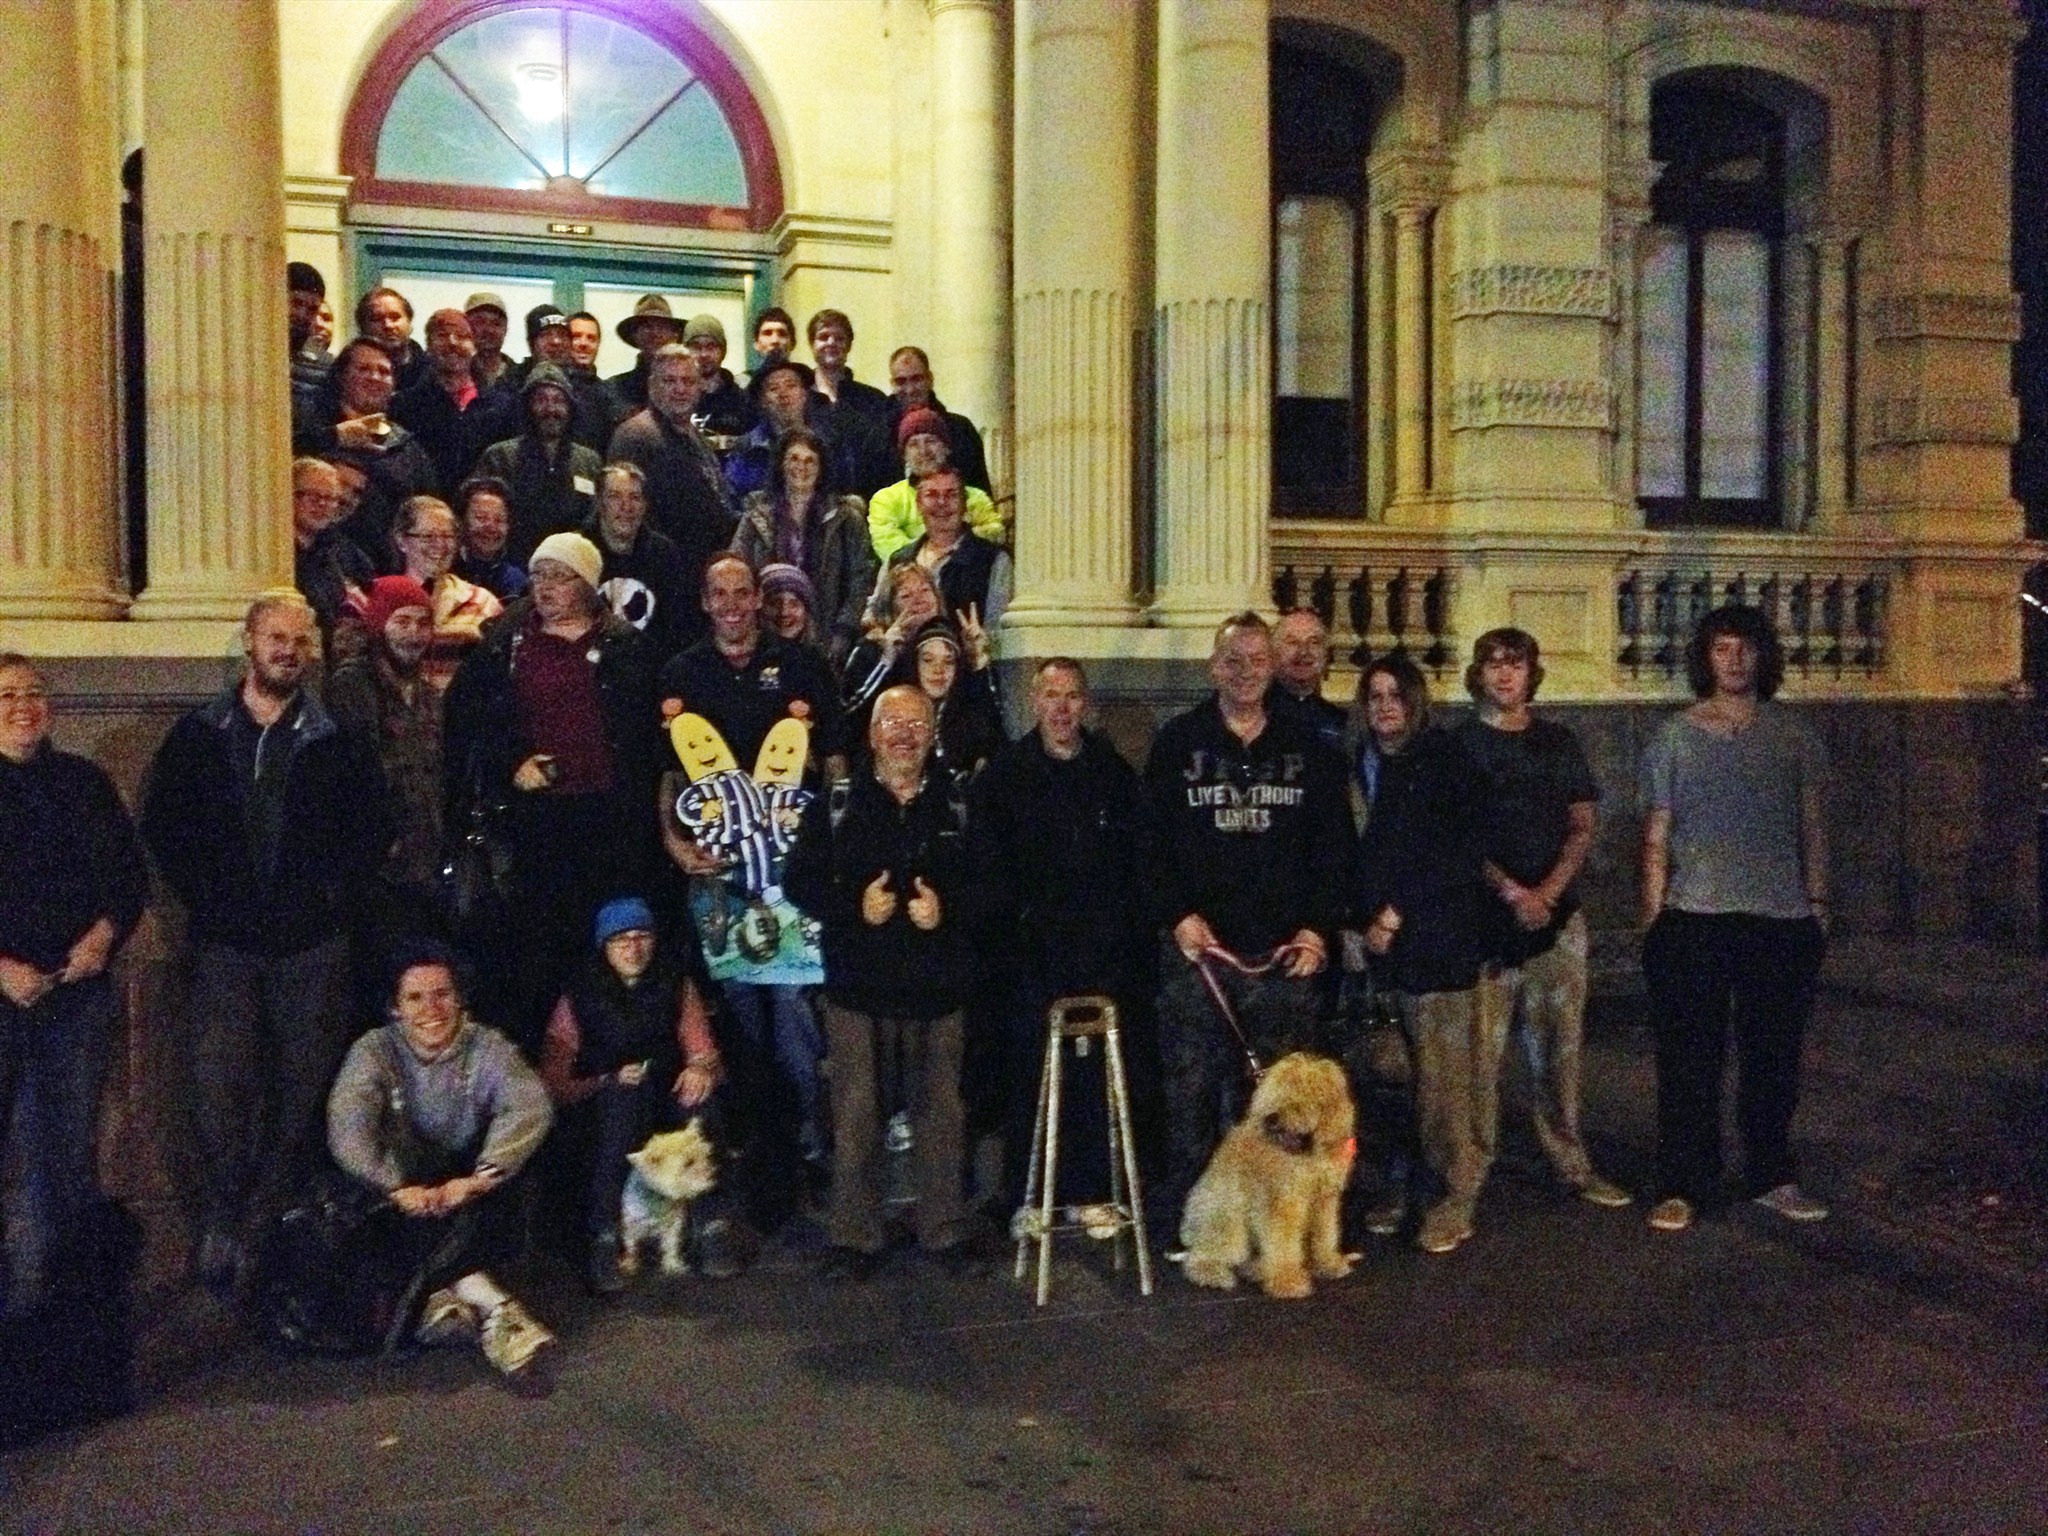 WWFM X - What time ? 3am at Northcote town hall